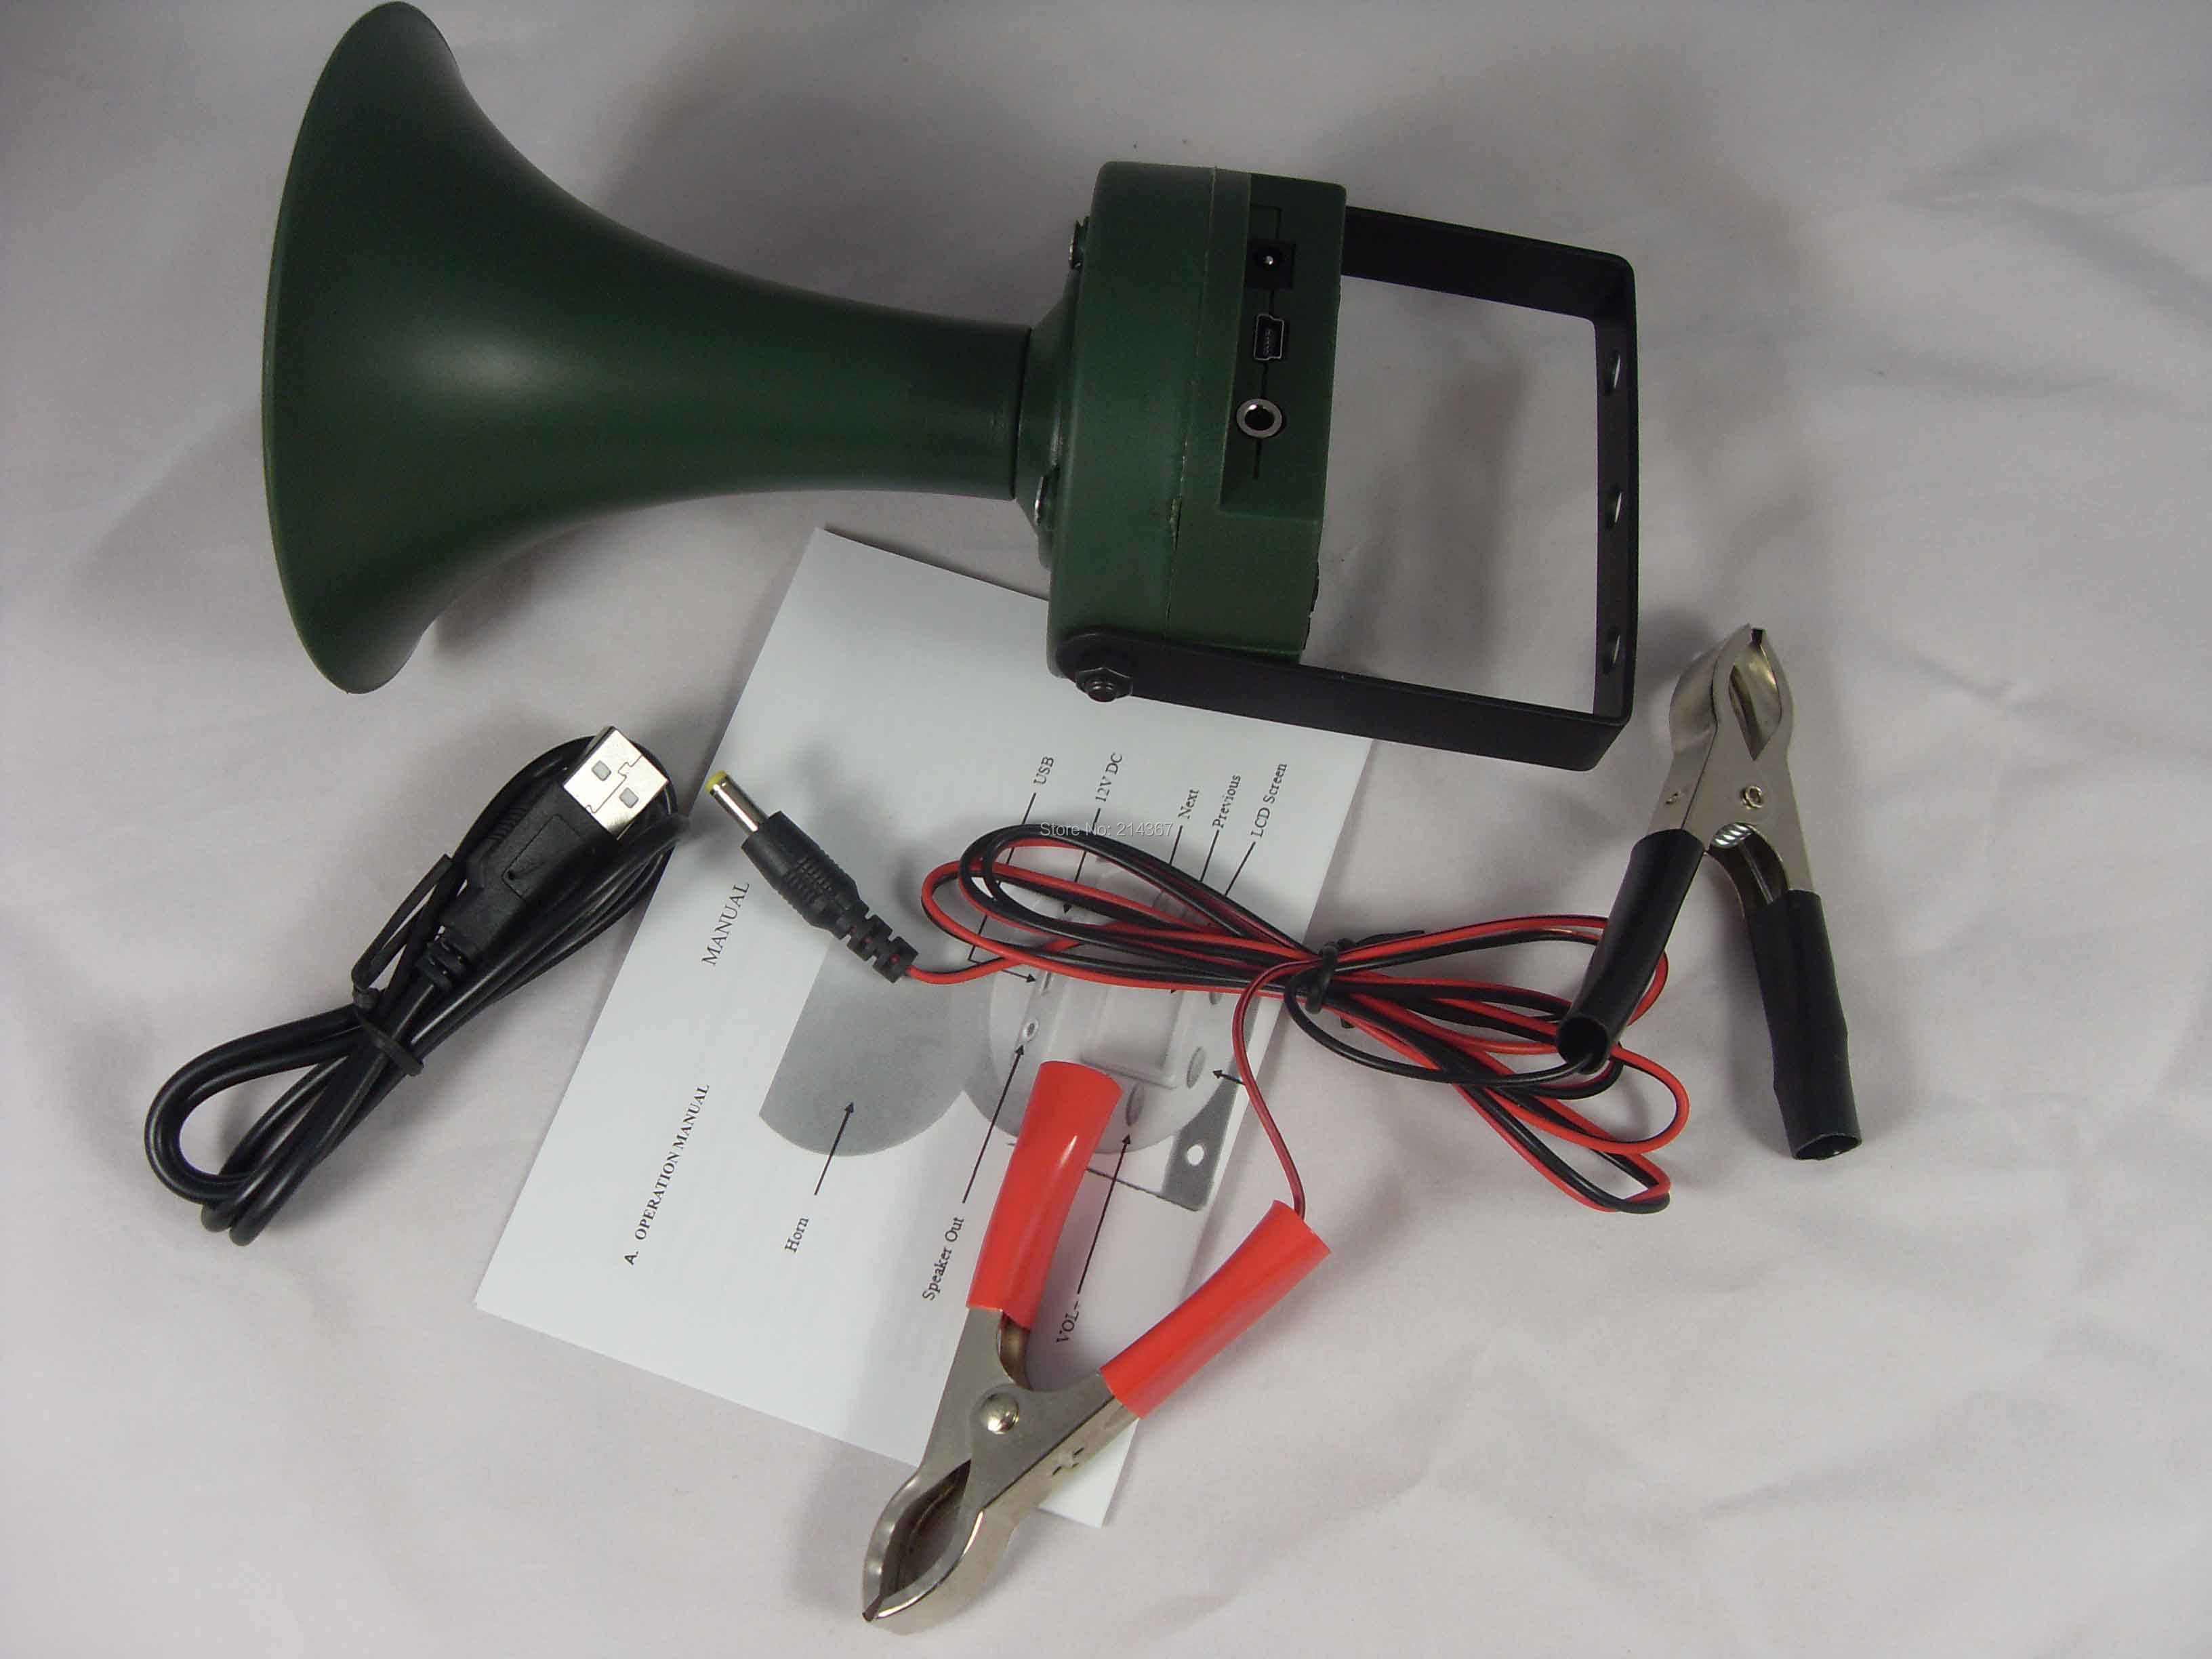 35w Power Bird Caller Speakers Bird Voices MP3 Player Bird Call for Hunting Game Caller Speaker bl1830 tool accessory electric drill li ion battery 18v 3000mah for makita 194205 3 194309 1 lxt400 18v 3 0ah power tool parts page 8